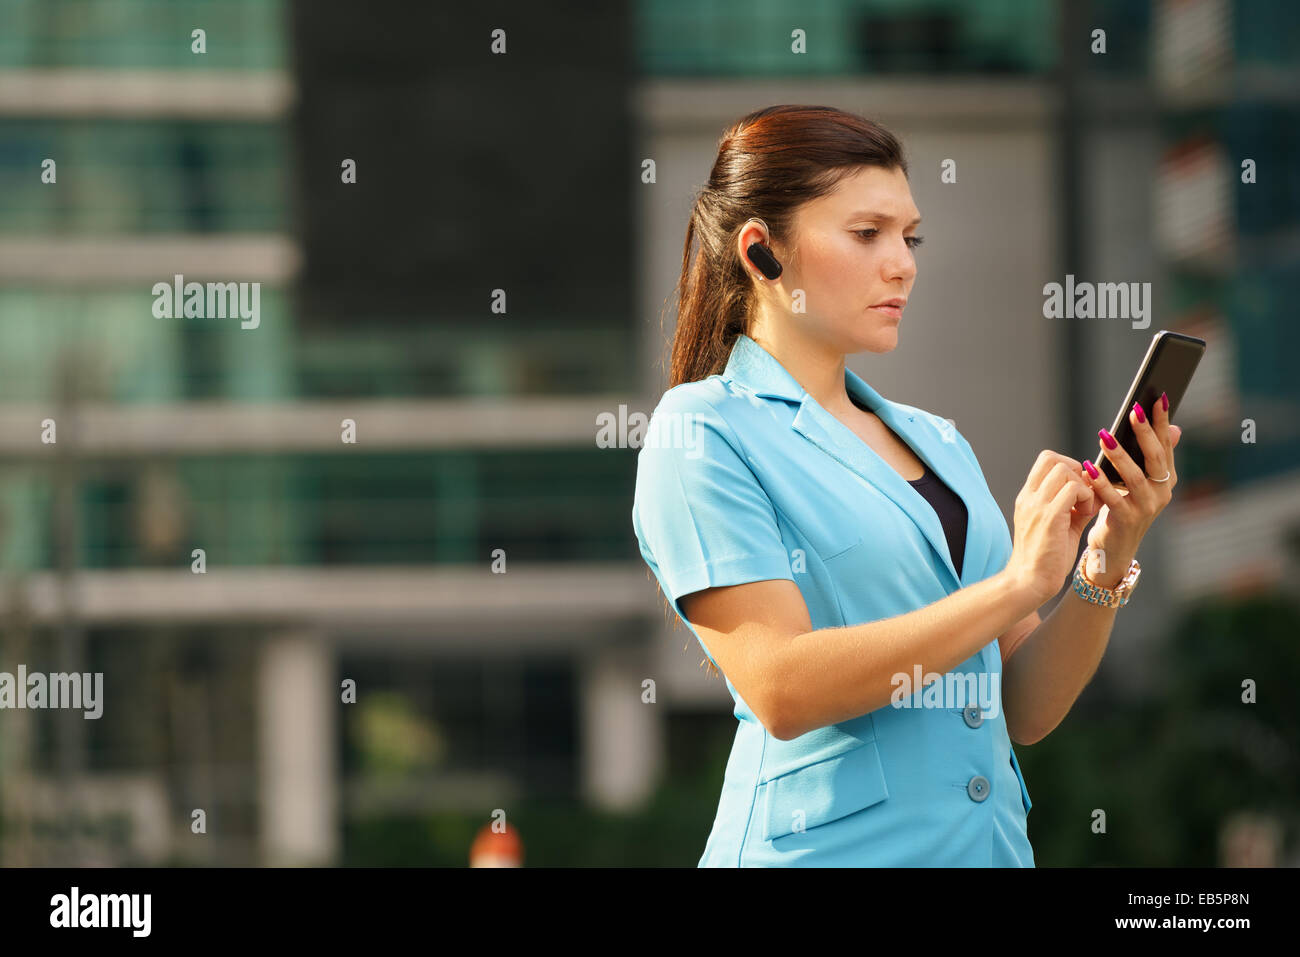 Adult hispanic person with mobile phone and wireless bluetooth headset, talking on telephone in the street out office - Stock Image